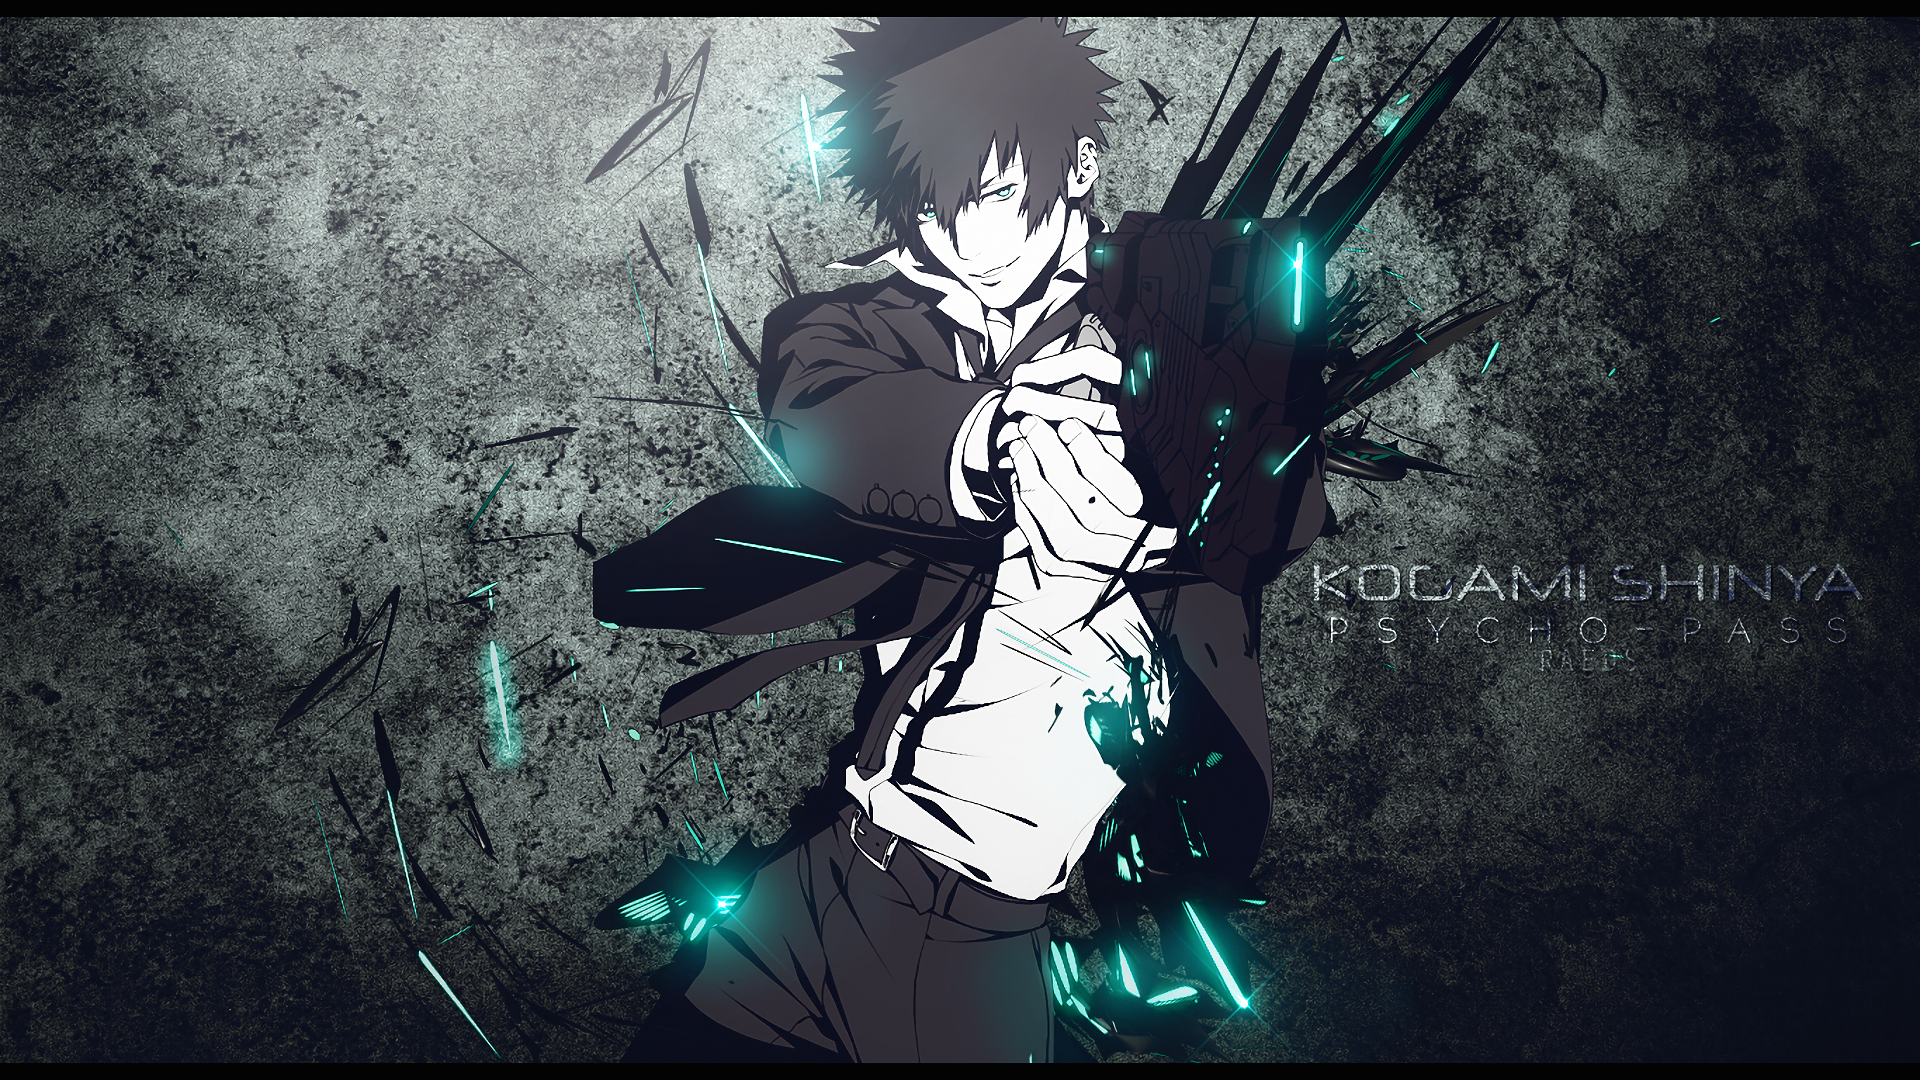 Shinya Kogami With His Dominator Hd Wallpaper Background Image